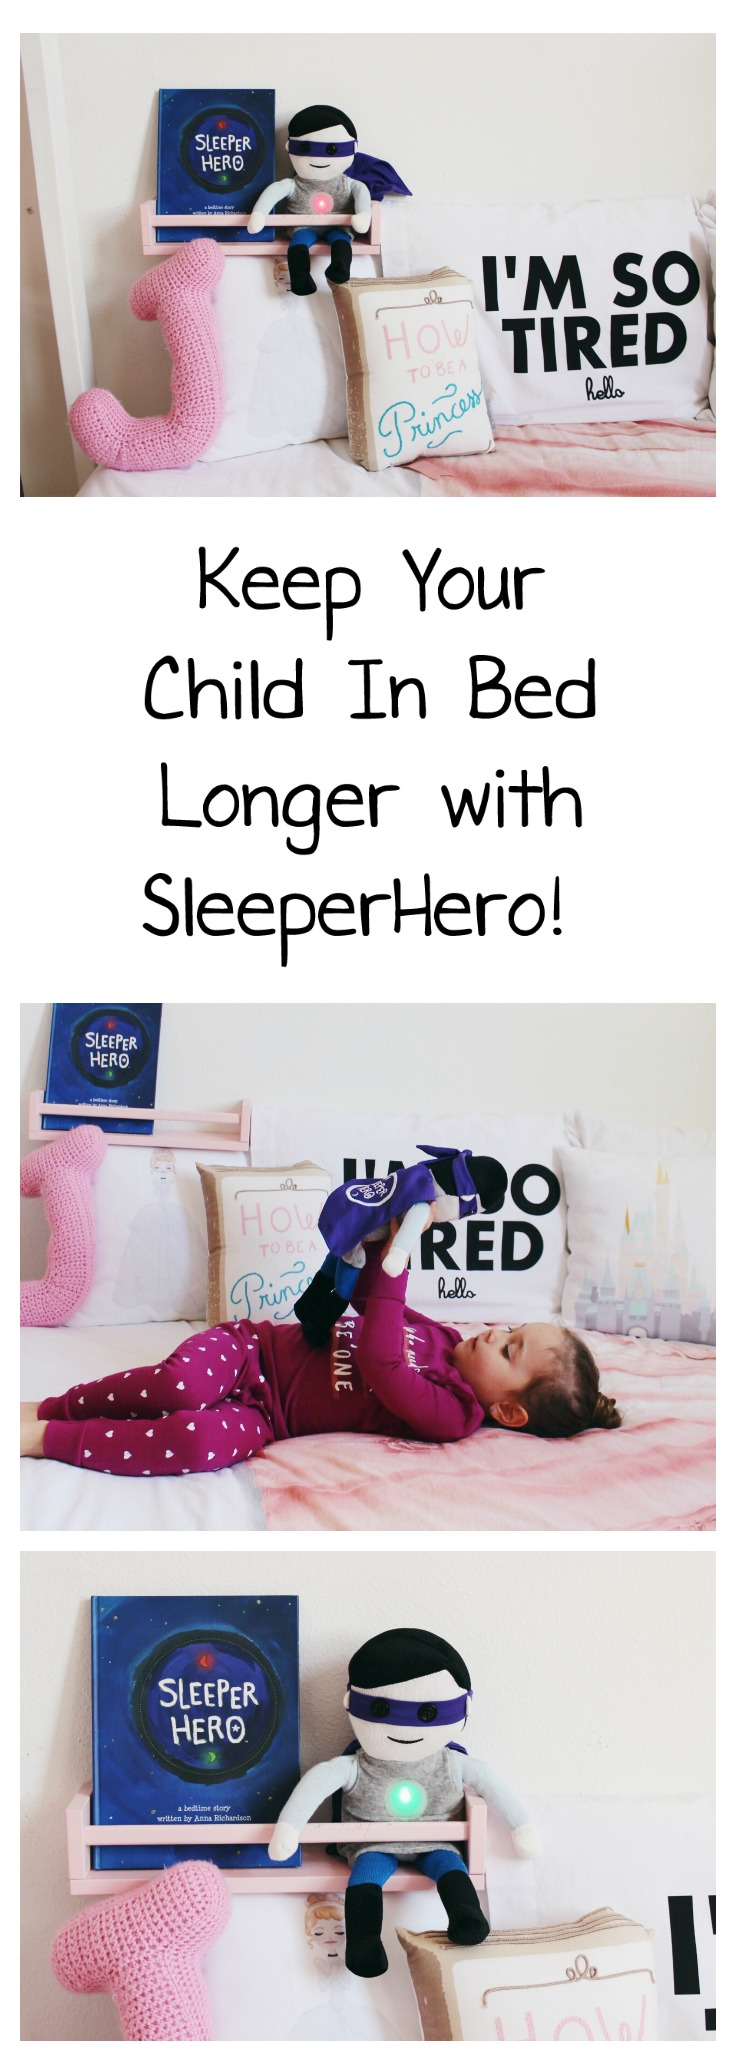 ok to wake clock, sleeper hero, sleeperhero, night clock, clock for kids, children's book, sleep routine, sleep schedule, red light, green light, oh happy play